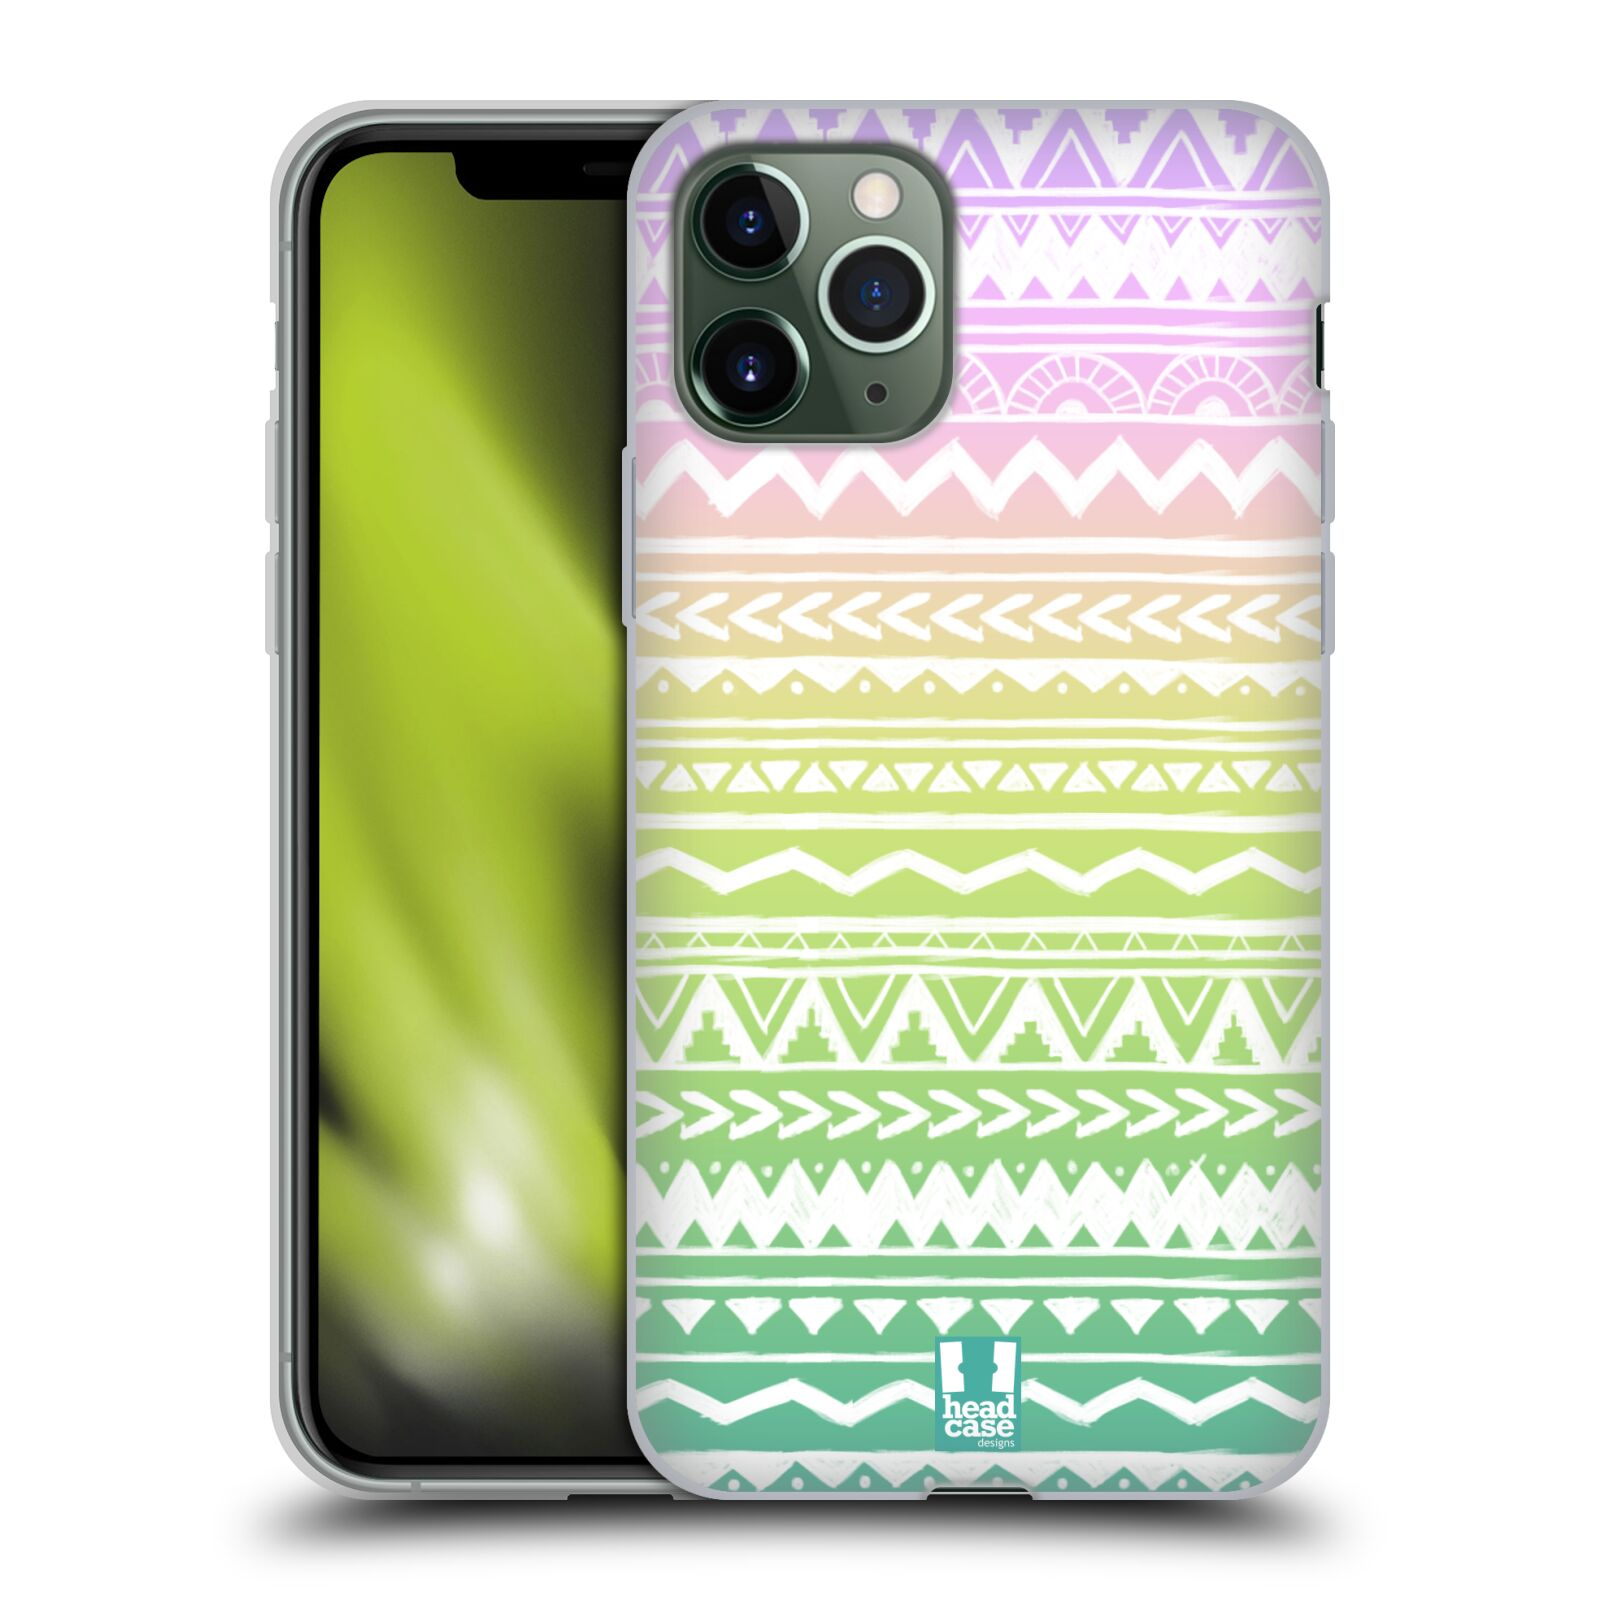 karl krytu na iphone 7 - Silikonové pouzdro na mobil Apple iPhone 11 Pro - Head Case - MIX AZTEC DRAWN